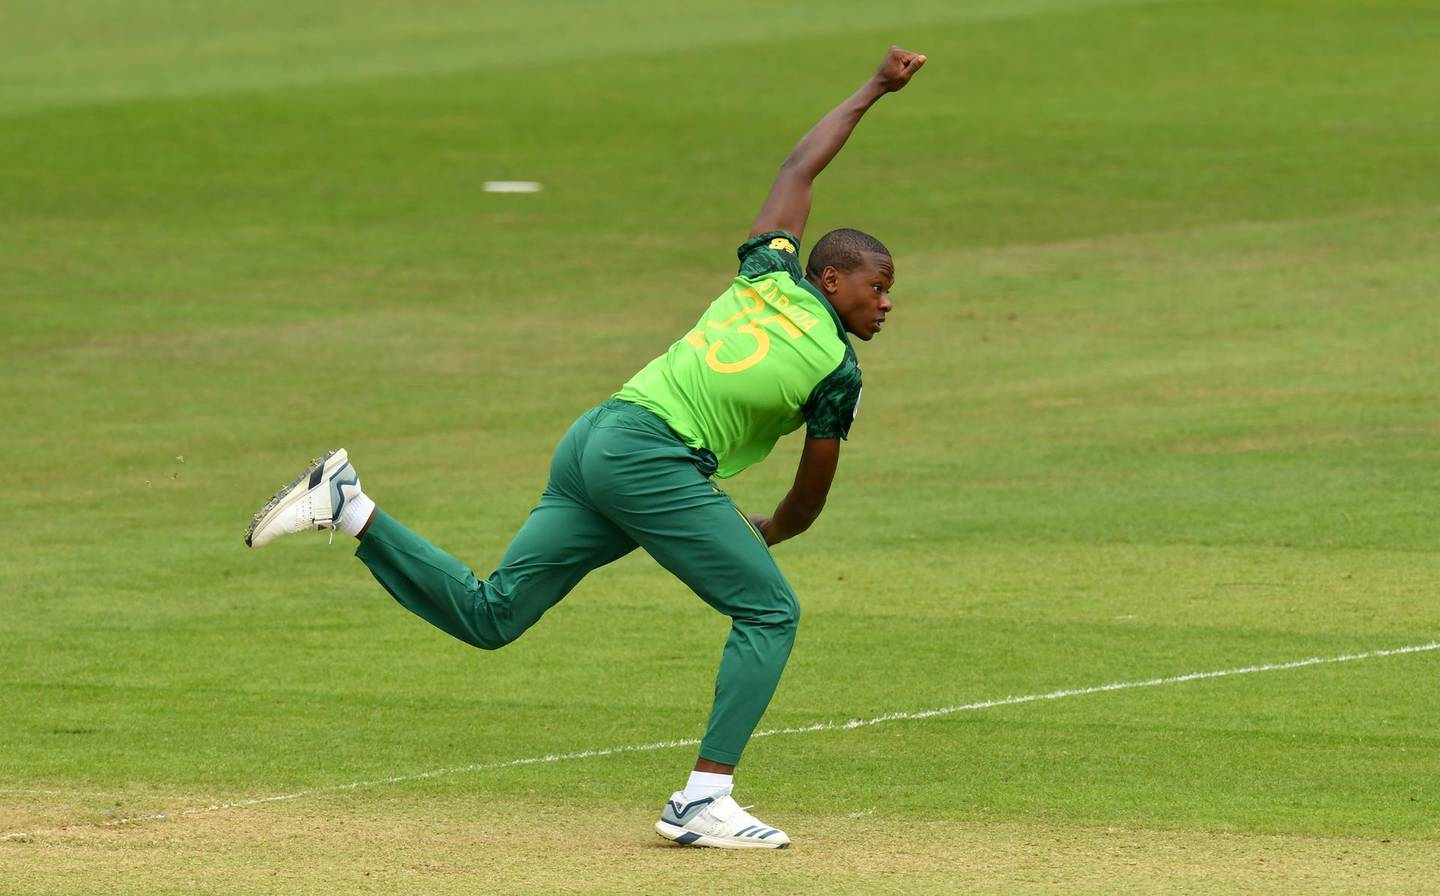 CARDIFF, WALES - MAY 24:  Kagiso Rabada of South Africa bowls during the ICC Cricket World Cup 2019 Warm Up match between Sri Lanka and South Africa at Cardiff Wales Stadium on May 24, 2019 in Cardiff, Wales. (Photo by Dan Mullan/Getty Images)